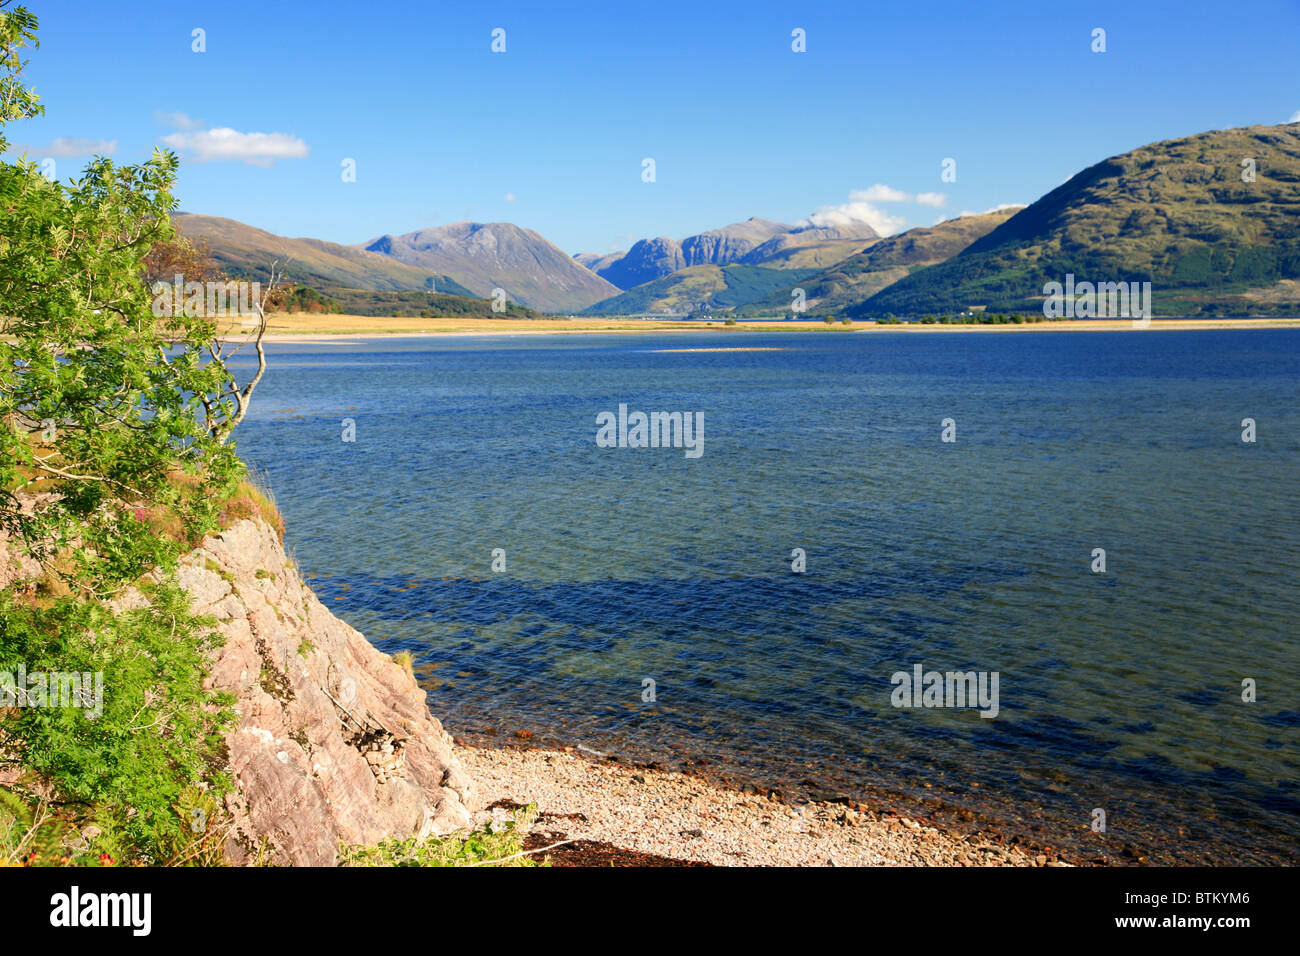 UK Scotland Highland Inverness-shire Loch Linnhe and the Glencoe mountains from Morven - Stock Image